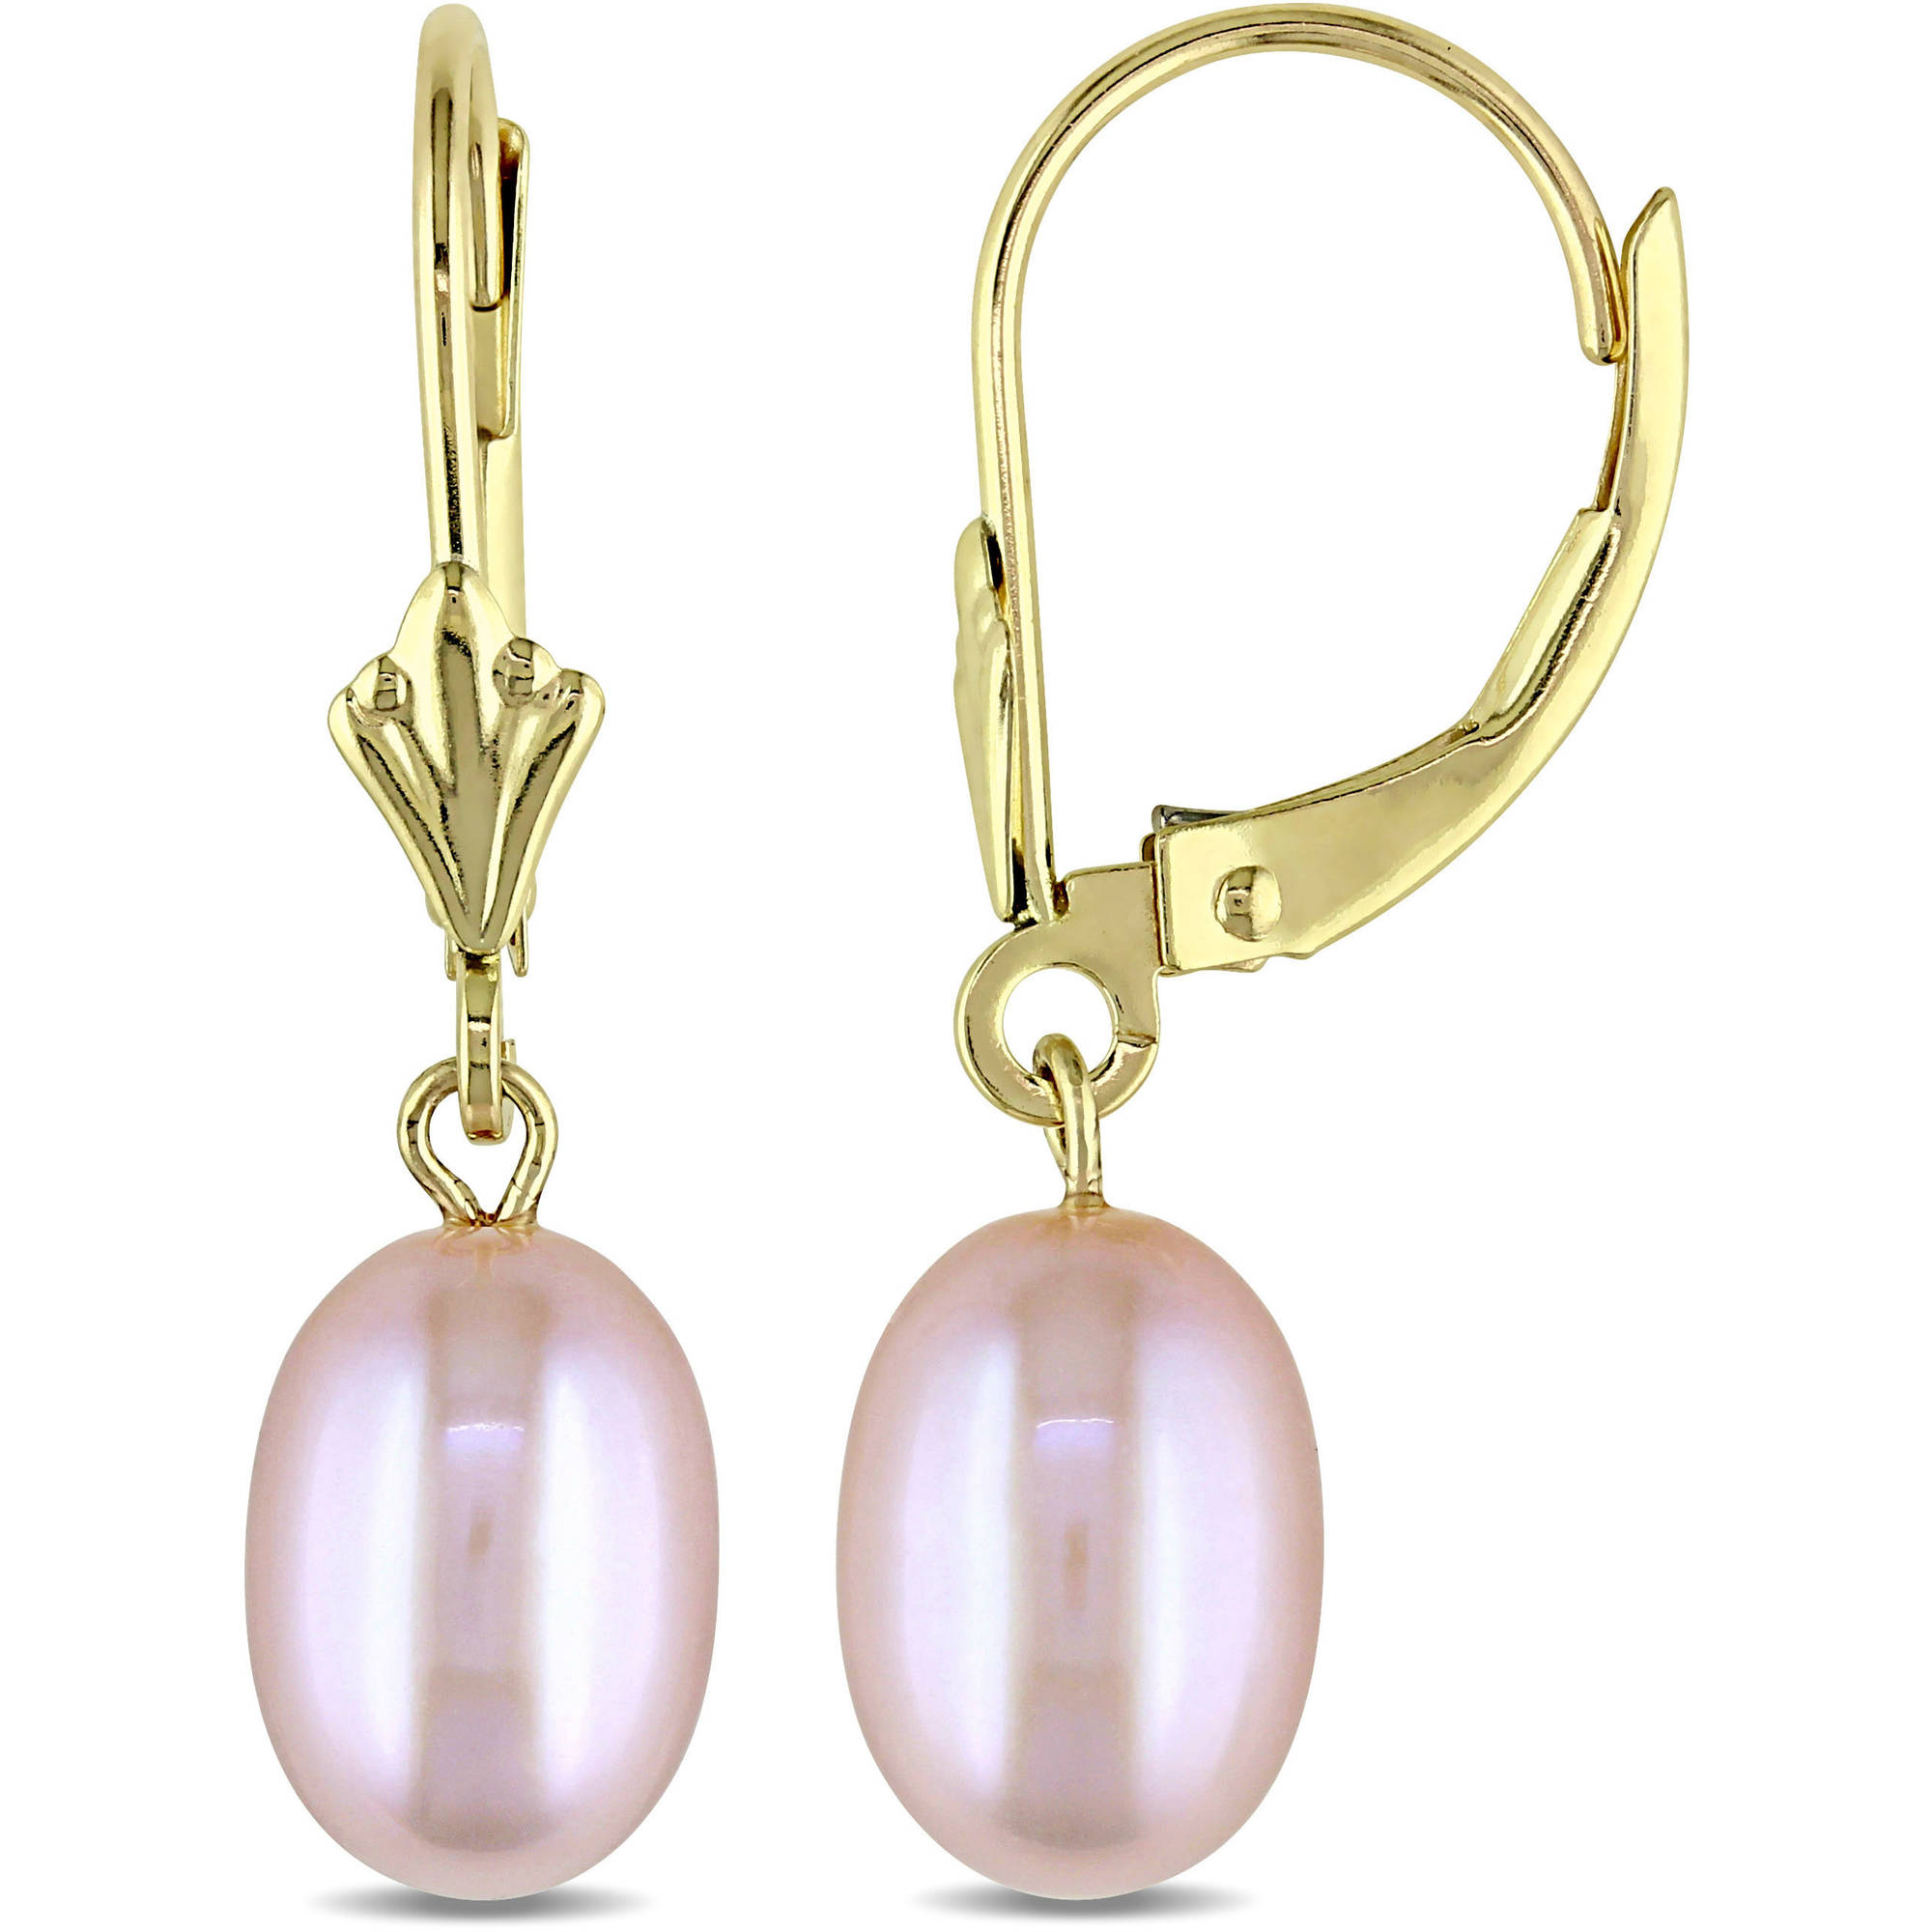 Miabella 6.5-7mm Pink Cultured Freshwater Pearl 10kt Yellow Gold Leverback Earrings